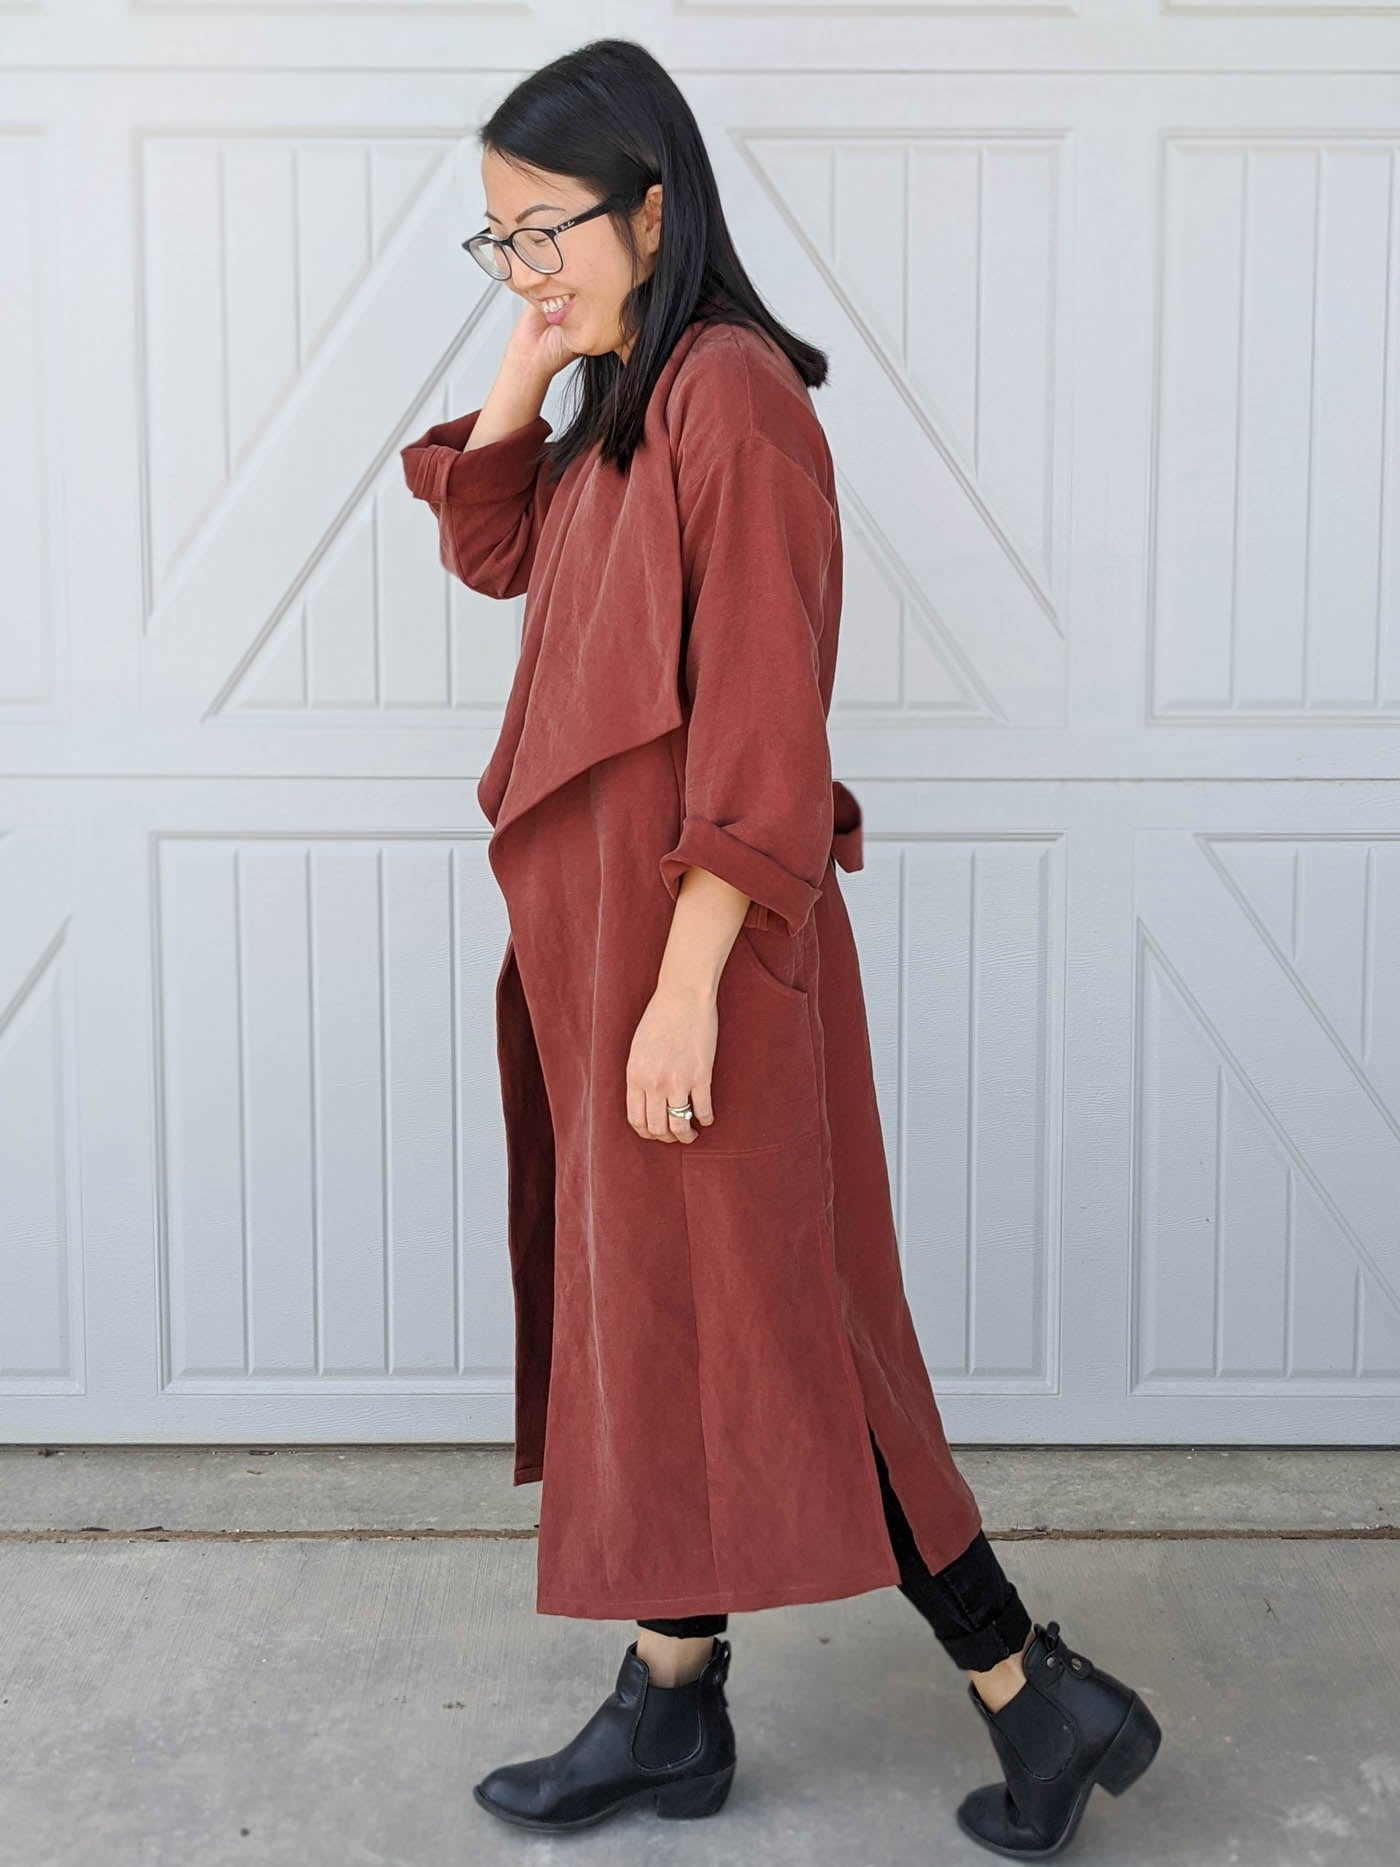 Women wearing the Cambria Duster in rust walking to the right with her left hand in her hair. Women is walking to the left in front of a white garage door.